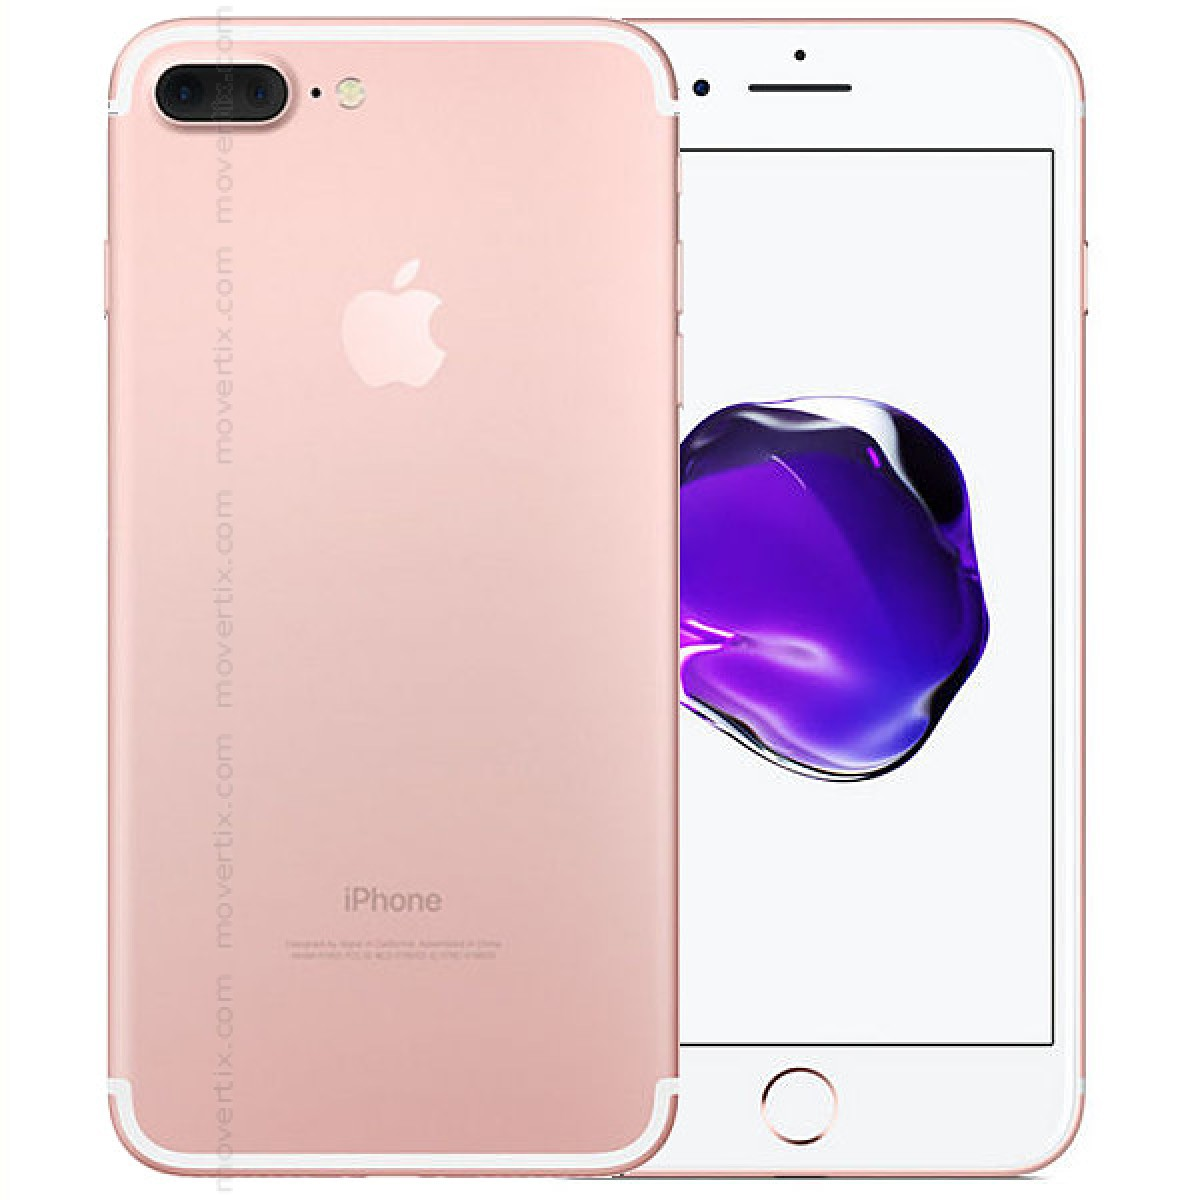 apple iphone 7 plus en oro rosa de 256gb 0190198046604 movertix tienda de m viles libres. Black Bedroom Furniture Sets. Home Design Ideas